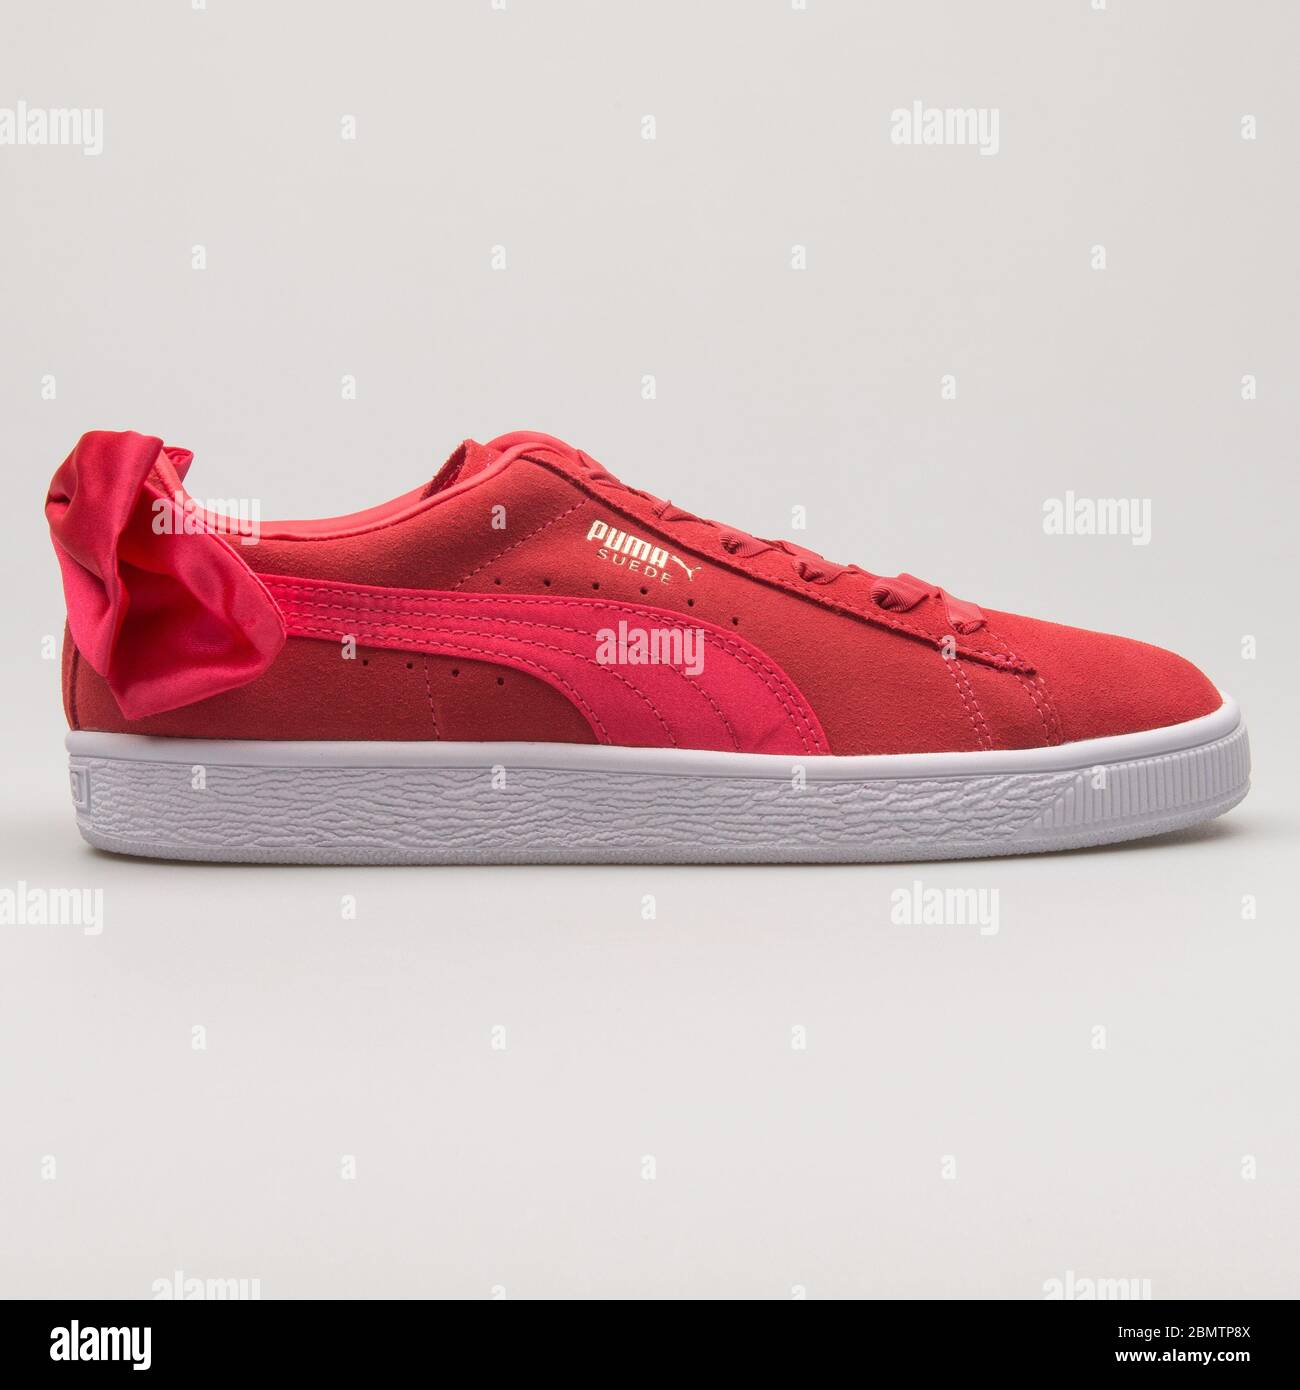 Puma Suede Bow red sneaker